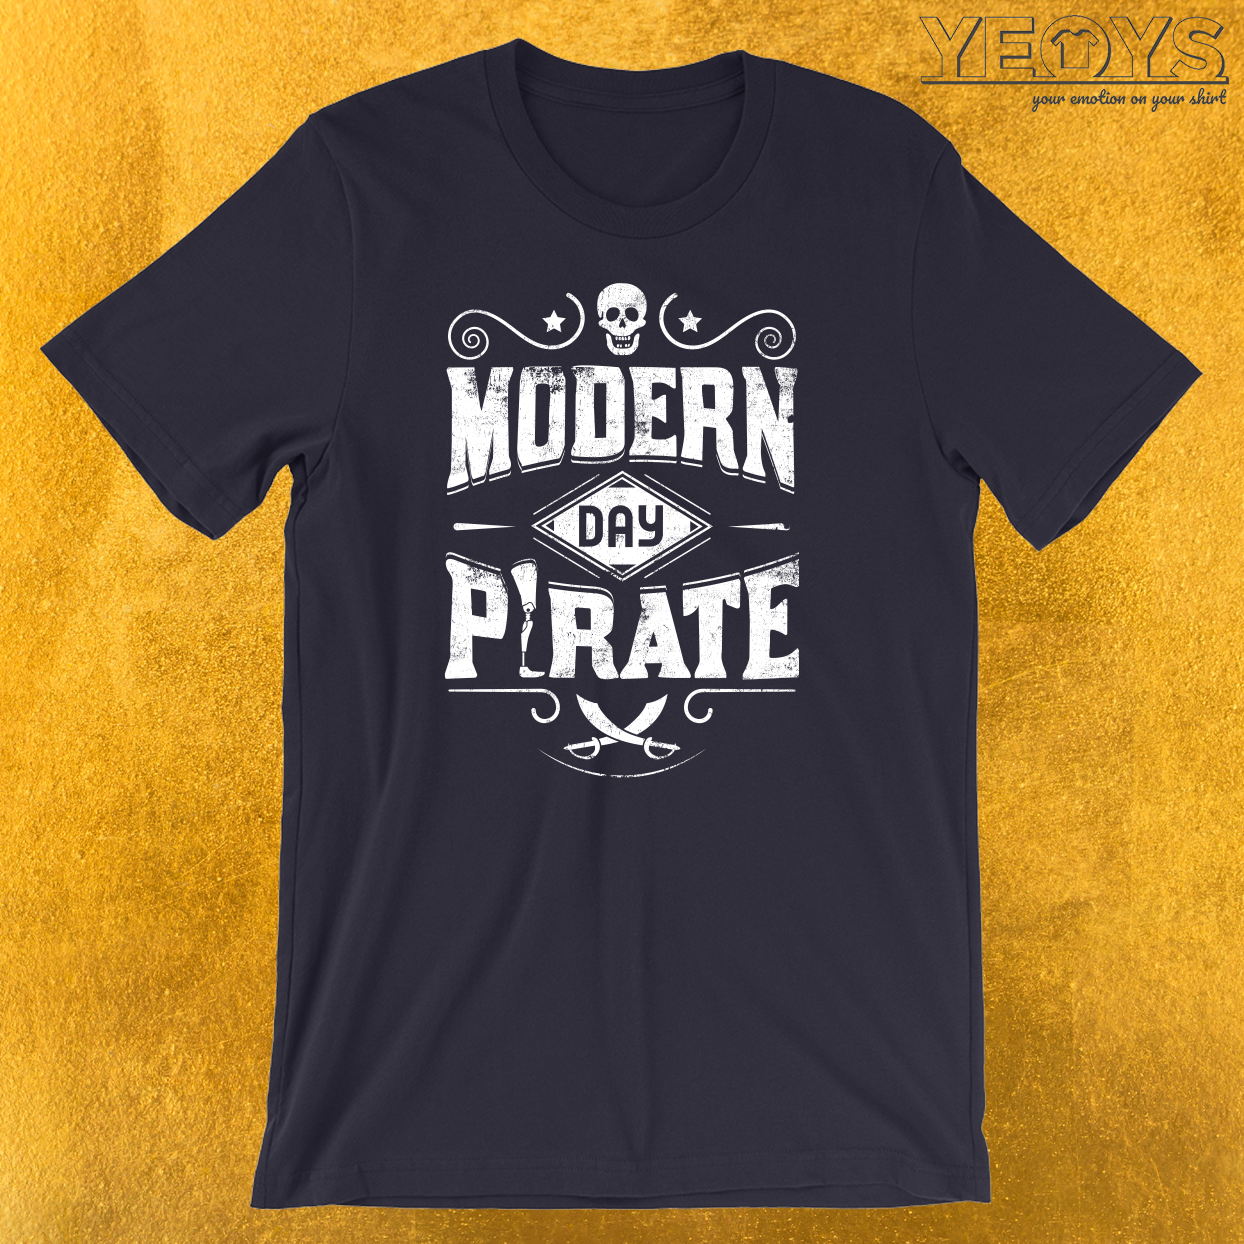 Modern Day Pirate T-Shirt